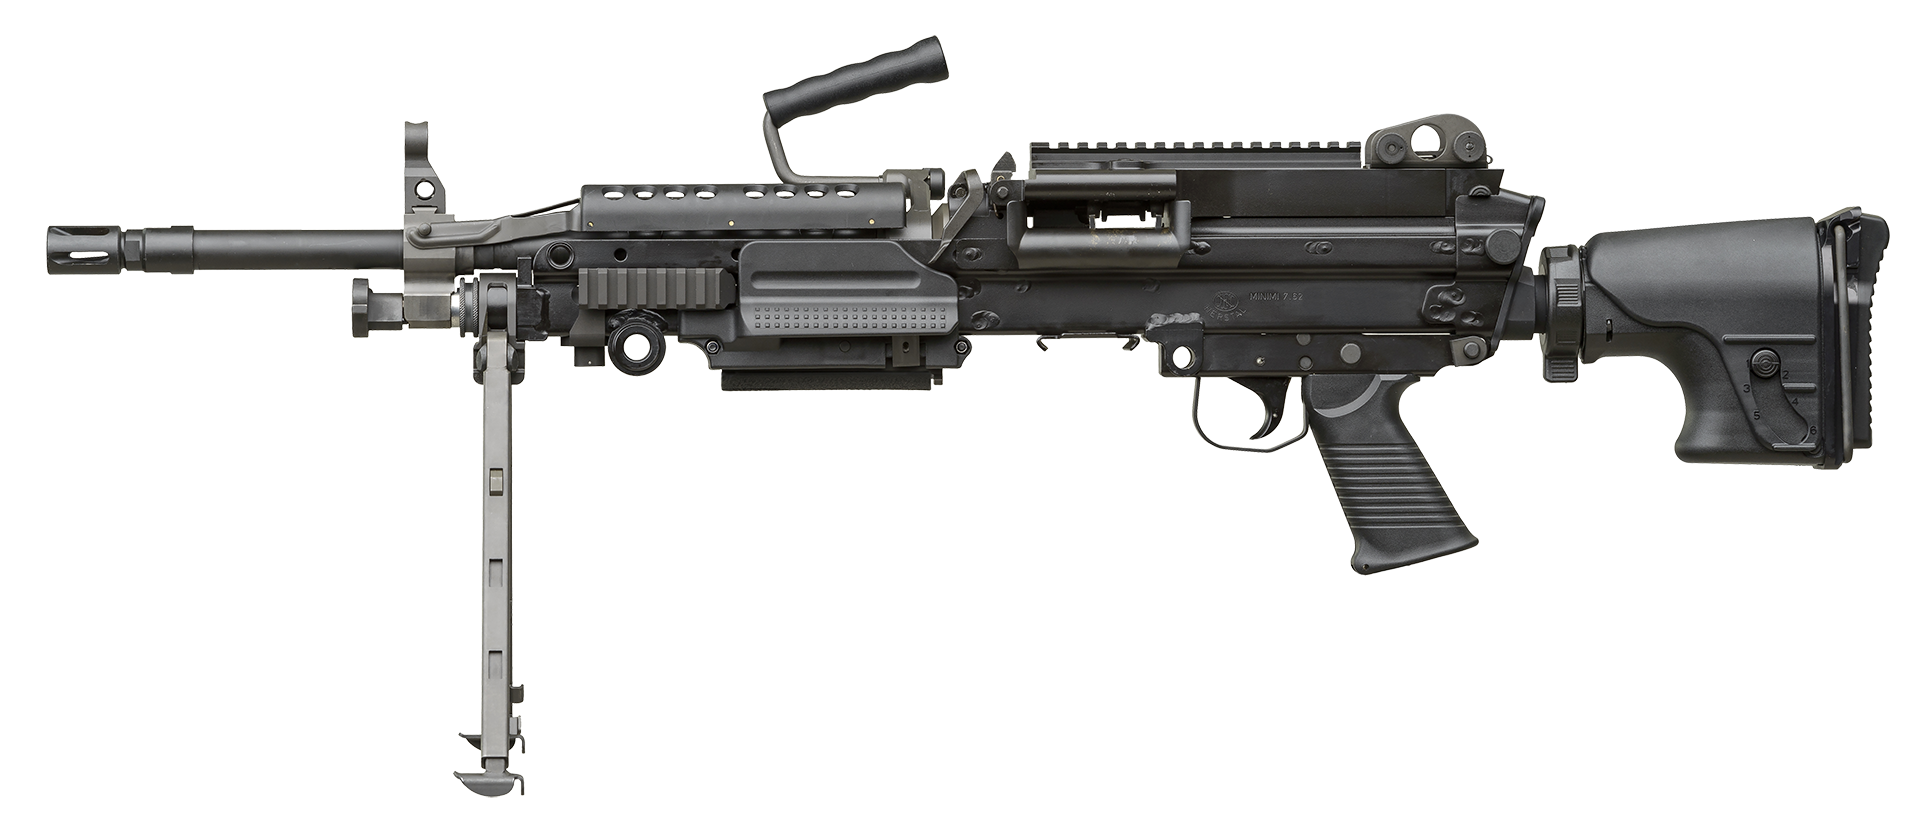 FN MINIMI® 7.62 Mk3 Tactical with accessories